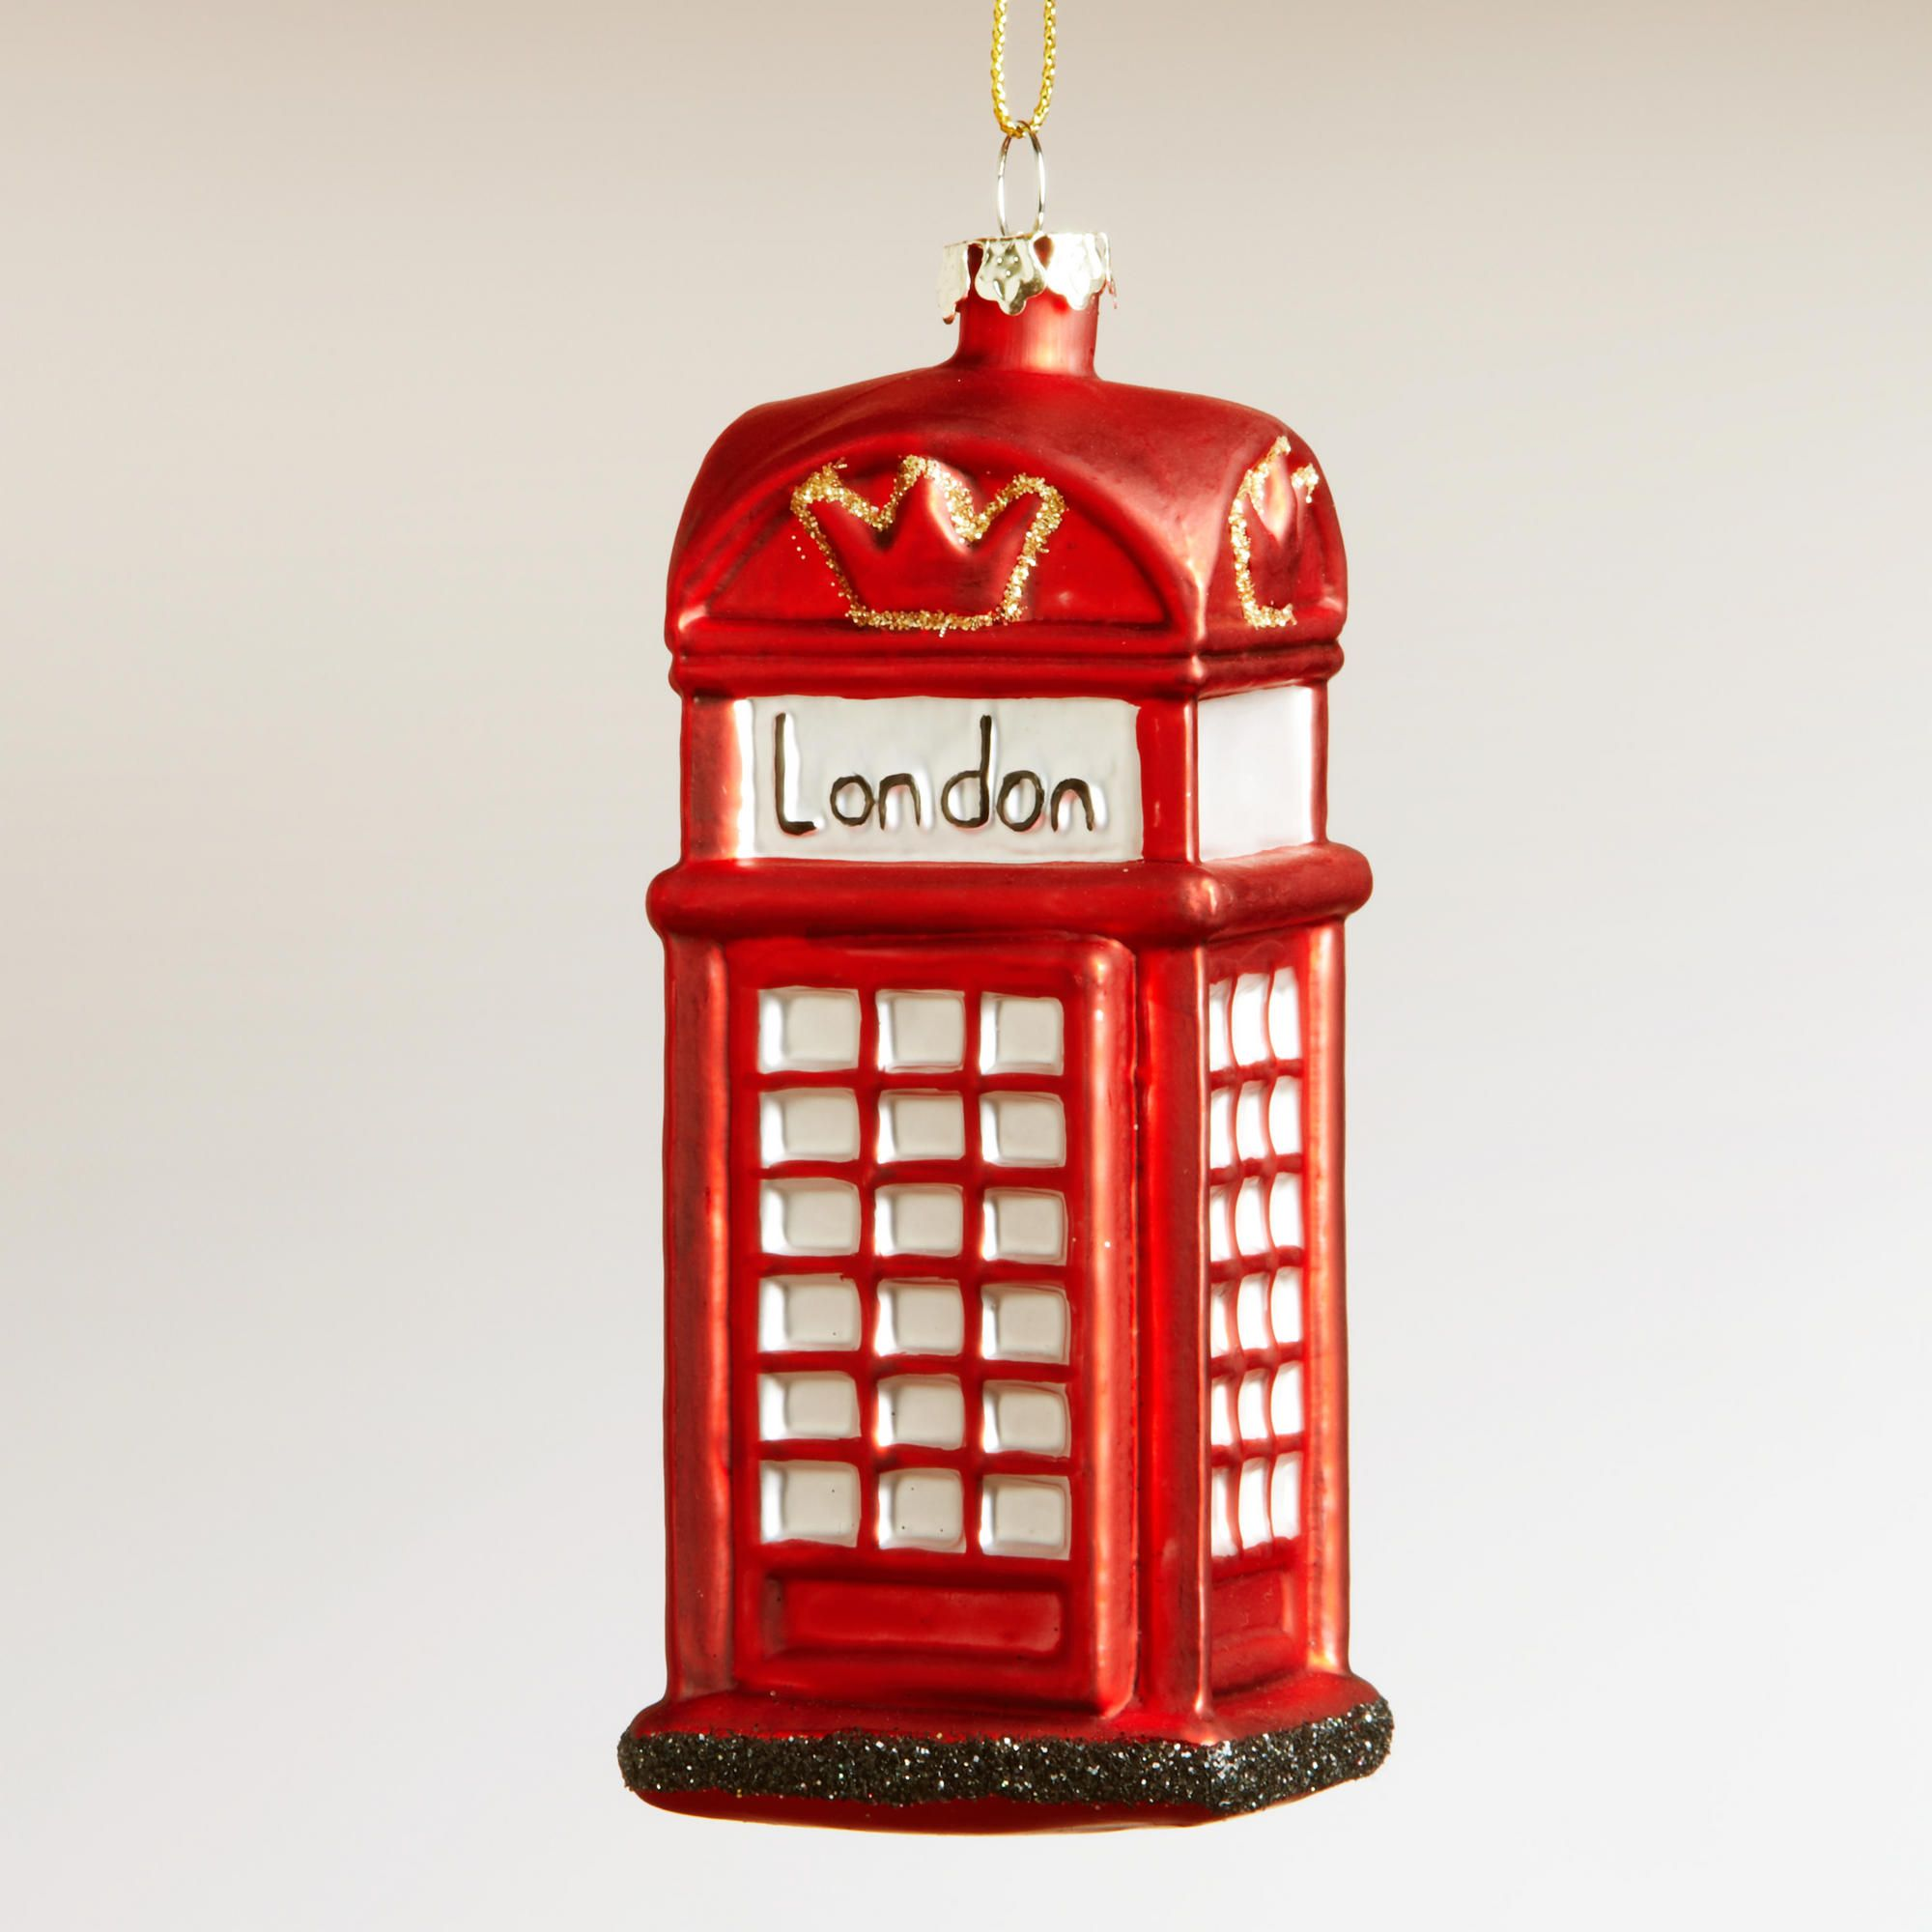 London phone booth ornament world market grown up christmas list